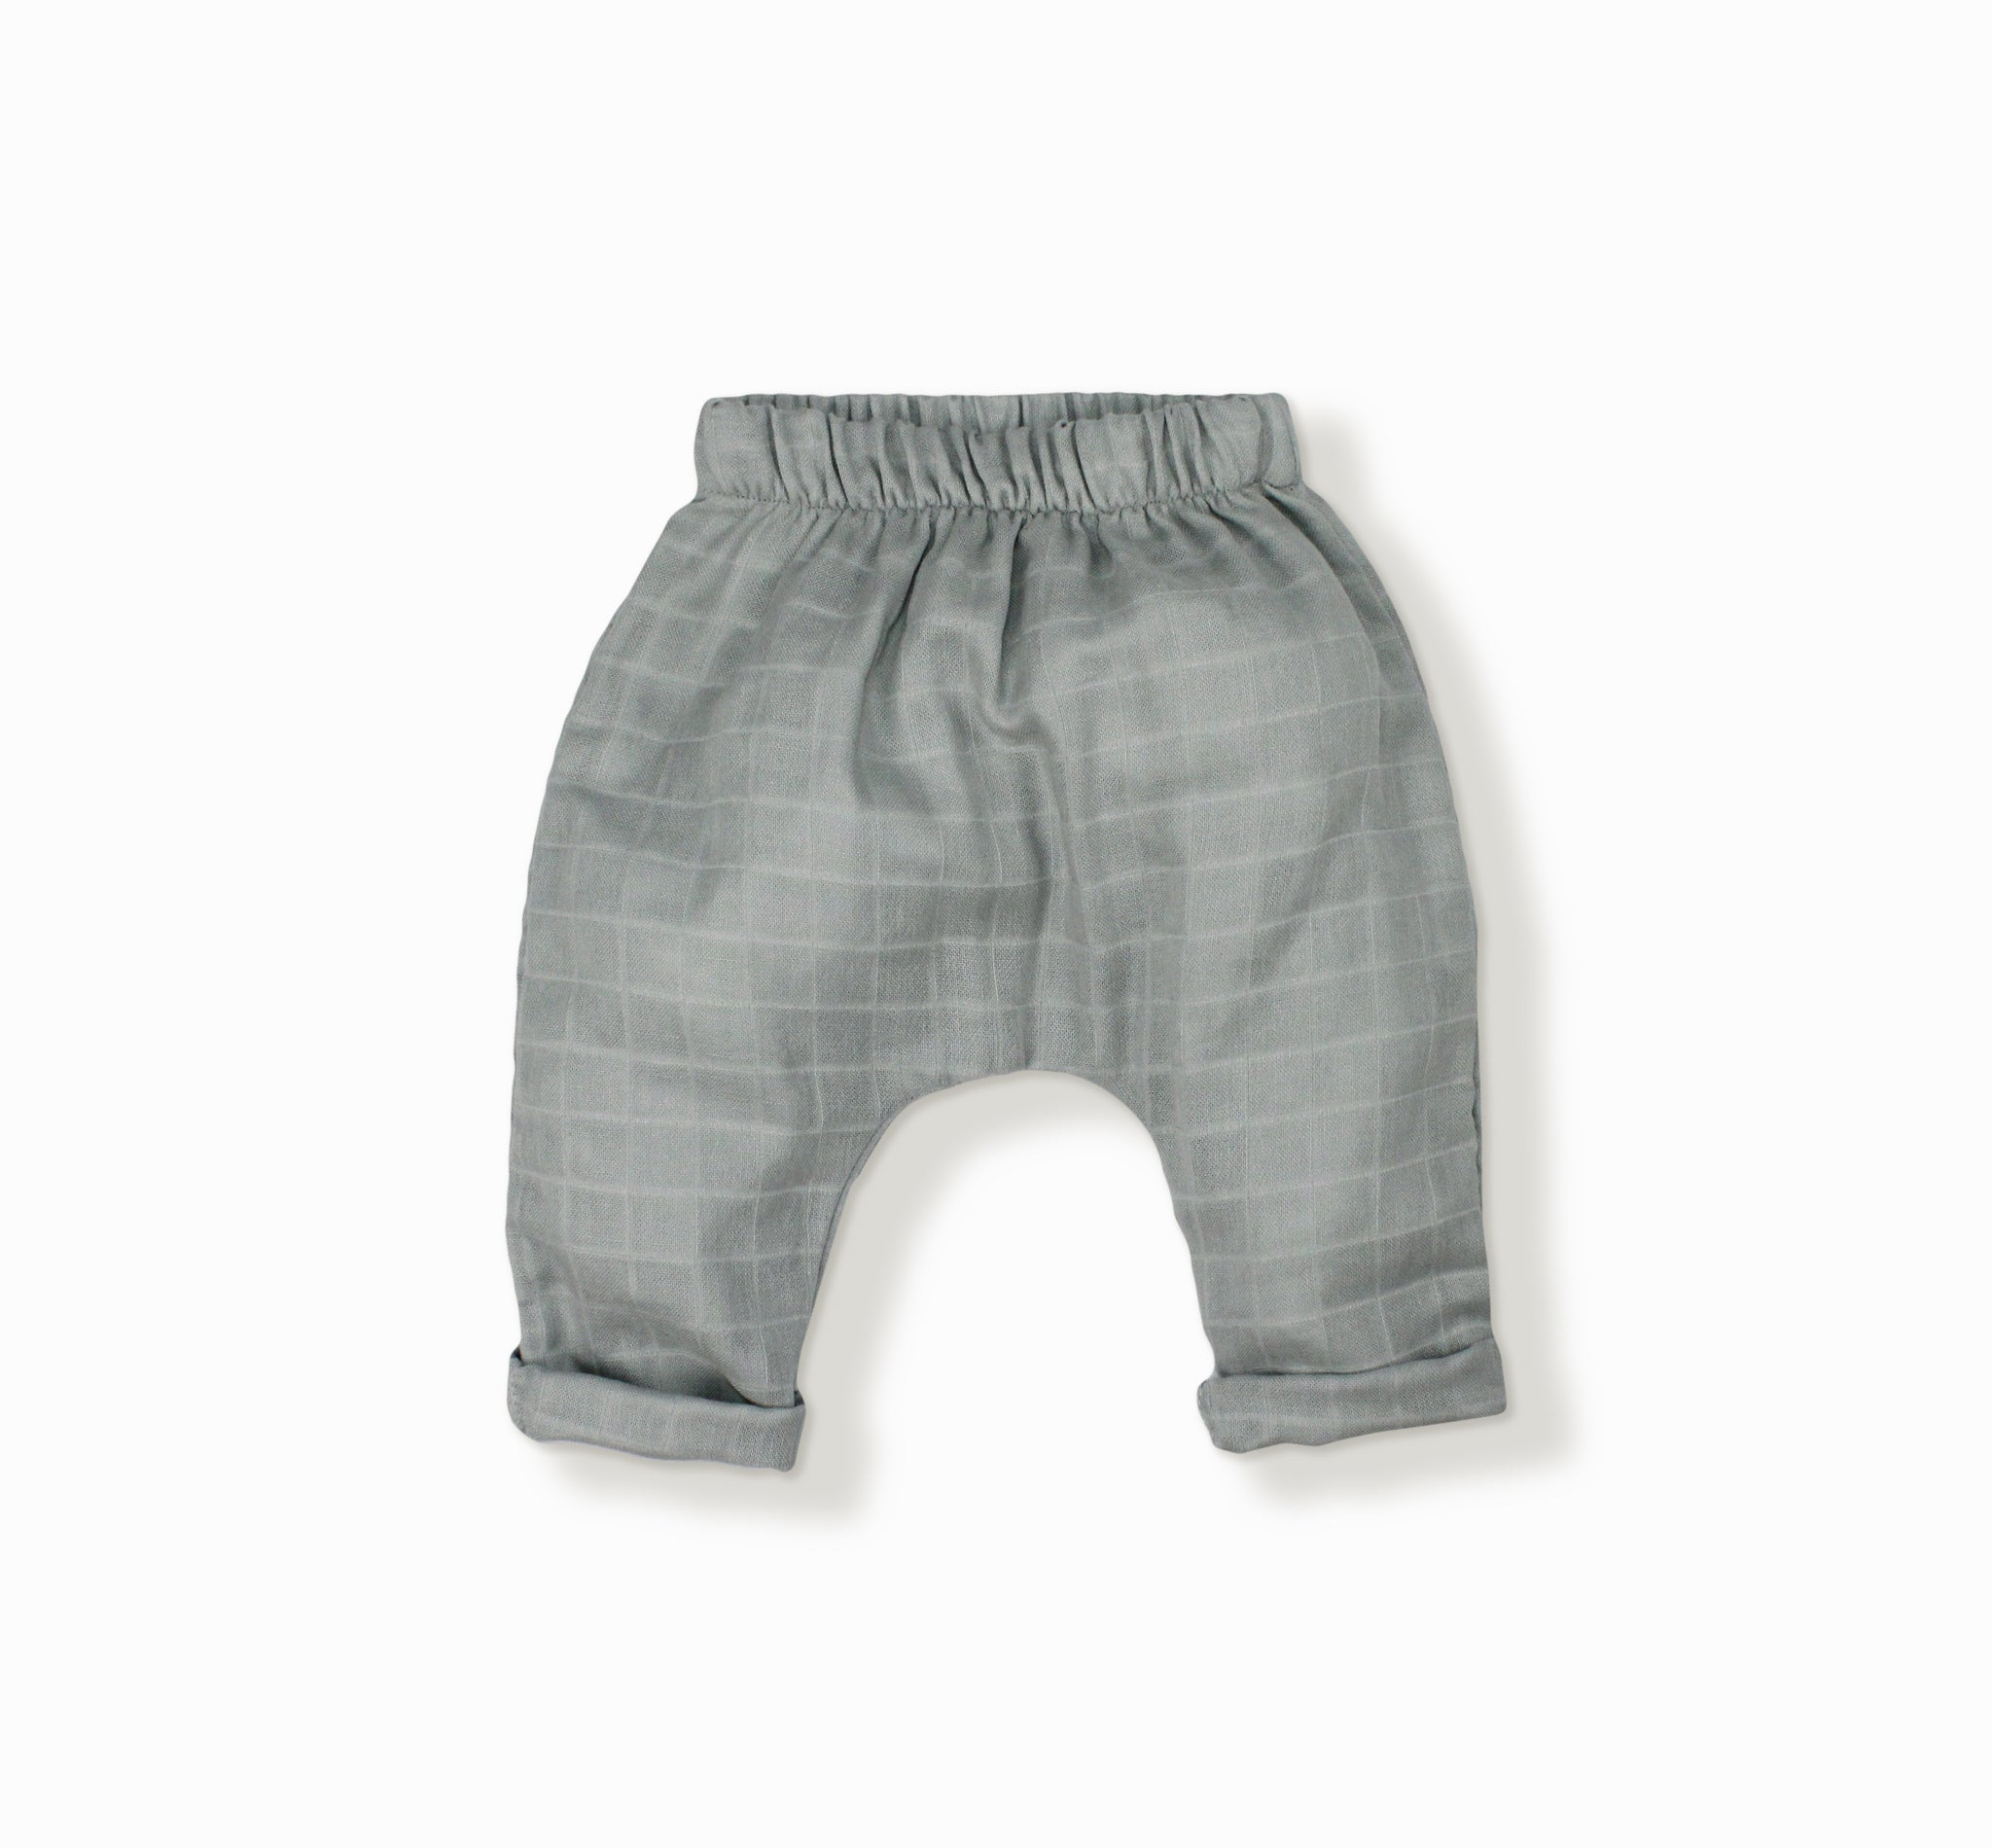 Trousers Marlon by Lebome - Light Grey